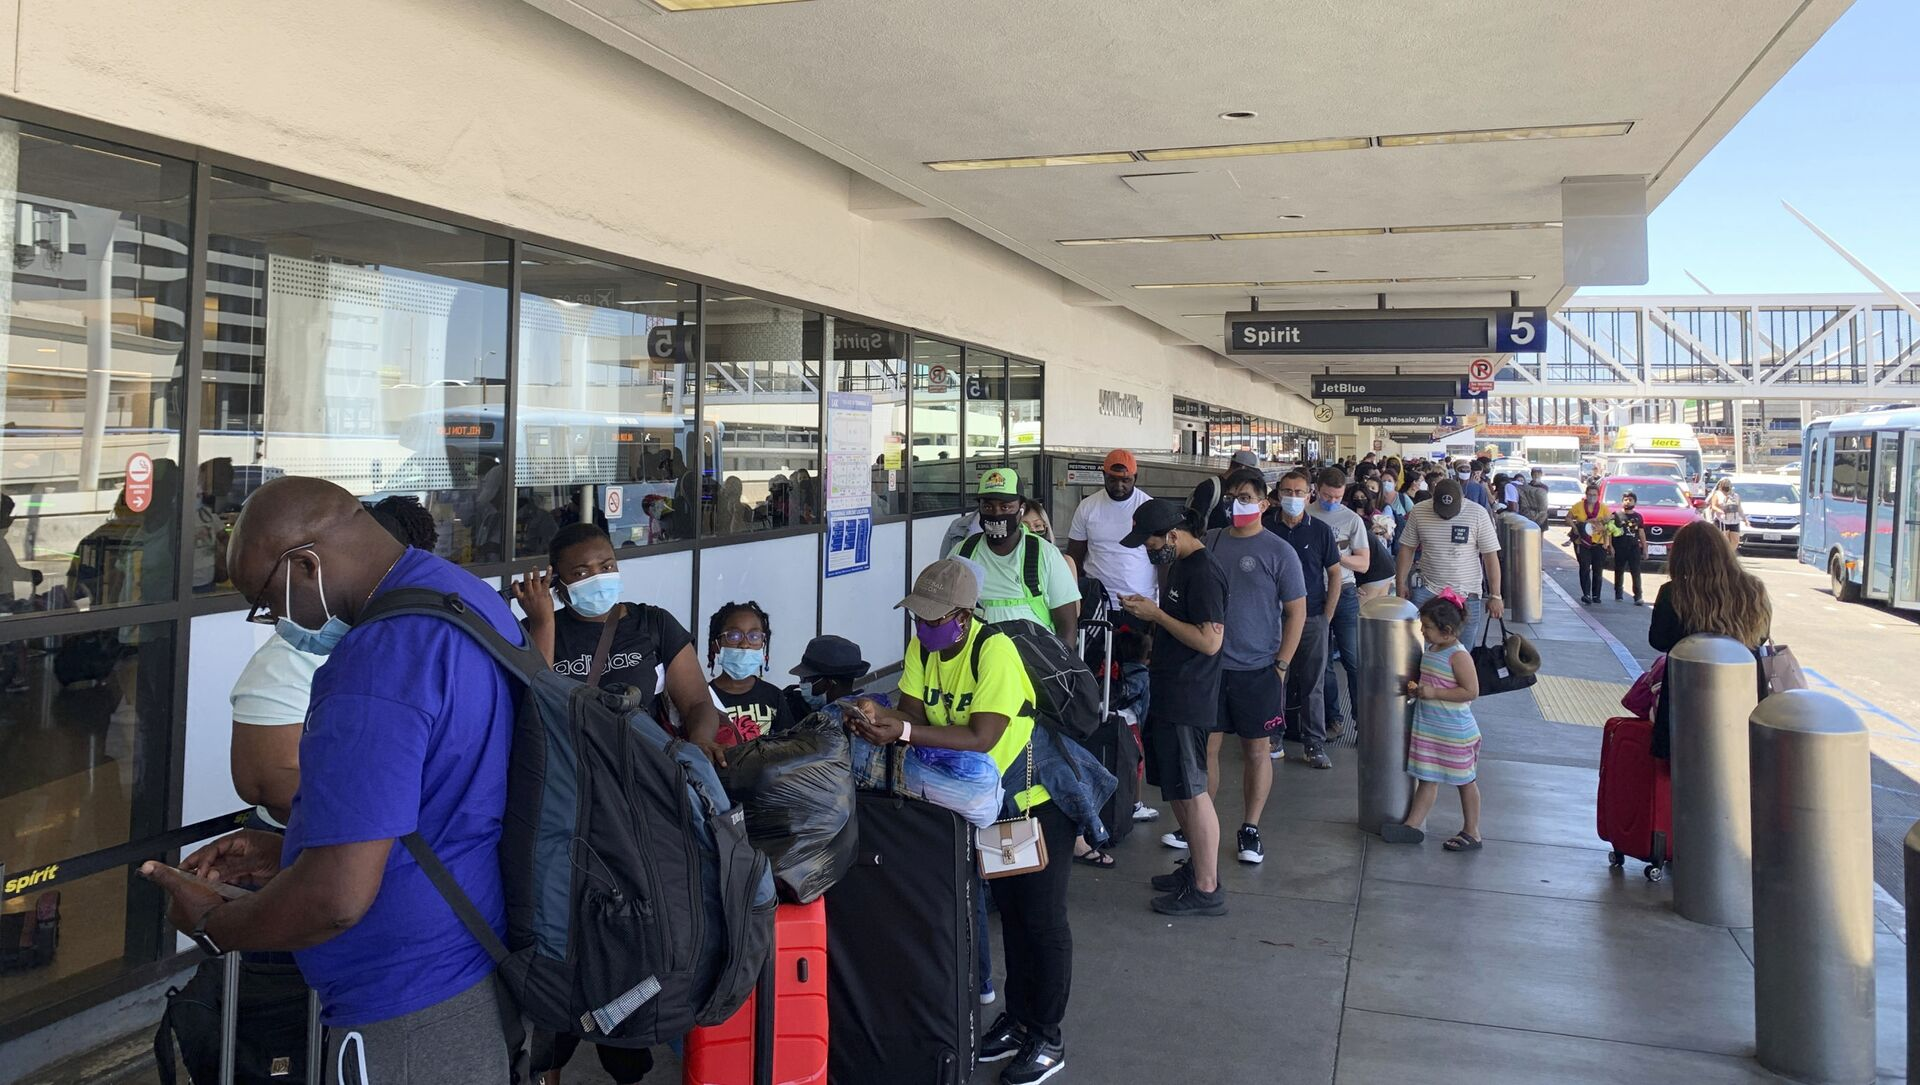 Passengers line up outside the Spirit Airlines terminal at Los Angeles International Airport in Los Angeles on Tuesday, Aug. 3, 2021. Spirit Airlines canceled more than half its schedule Tuesday, and American Airlines struggled to recover from weekend storms at its Texas home, stranding thousands of passengers at the height of the summer travel season. - Sputnik International, 1920, 05.08.2021